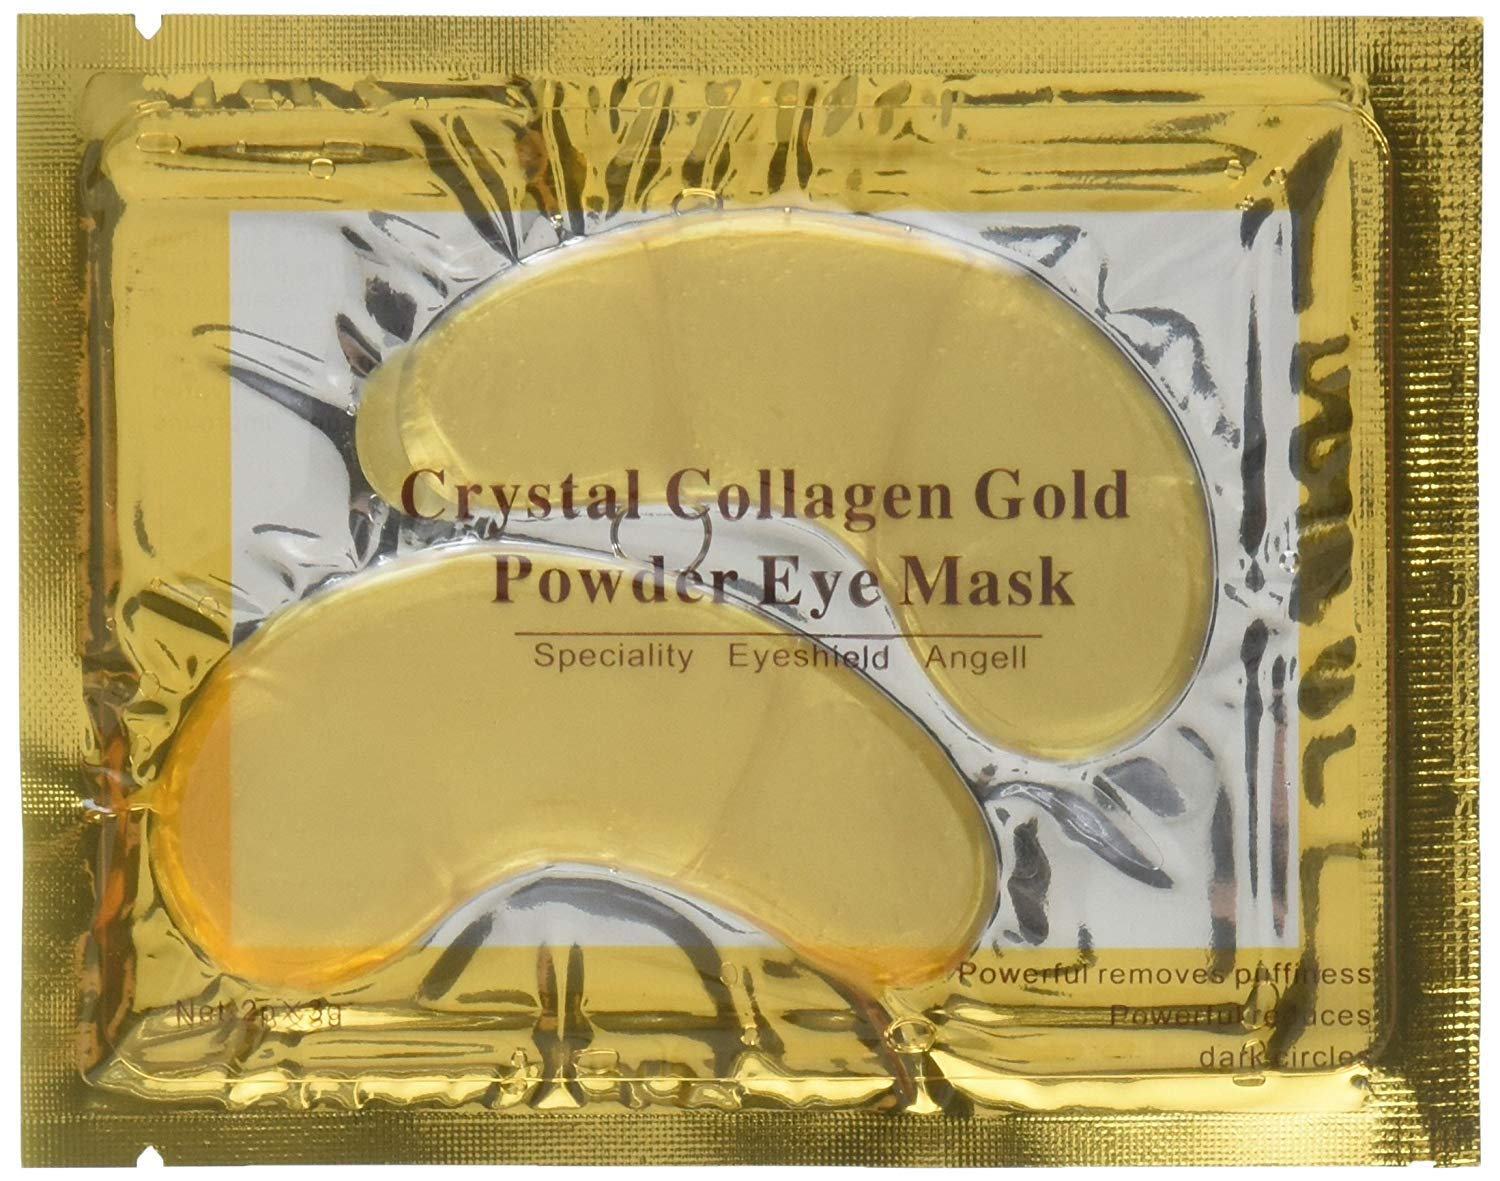 100 Crystal 24K Gold Powder Gel Collagen Eyes Masks Sheet Patch Anti Ageing Remove Bags Dark Circles & Puffiness Skin Care Anti Wrinkle Moisturising Hydrating by AICHUN BEAUTY